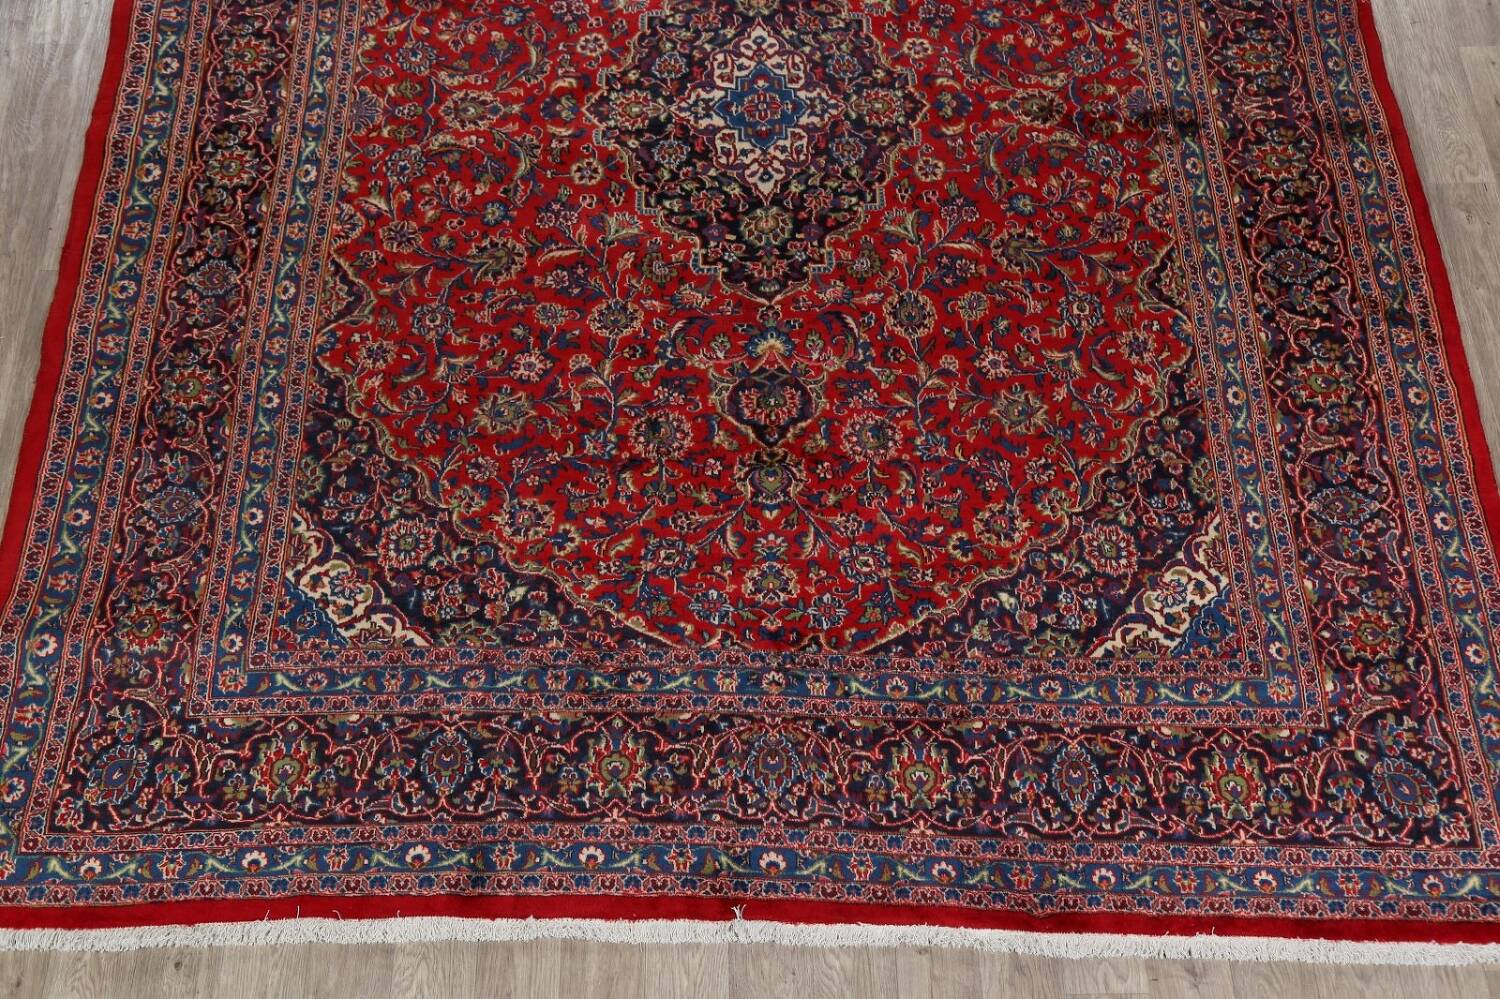 Vintage Floral Red Mashad Persian Area Rug 10x12 image 8